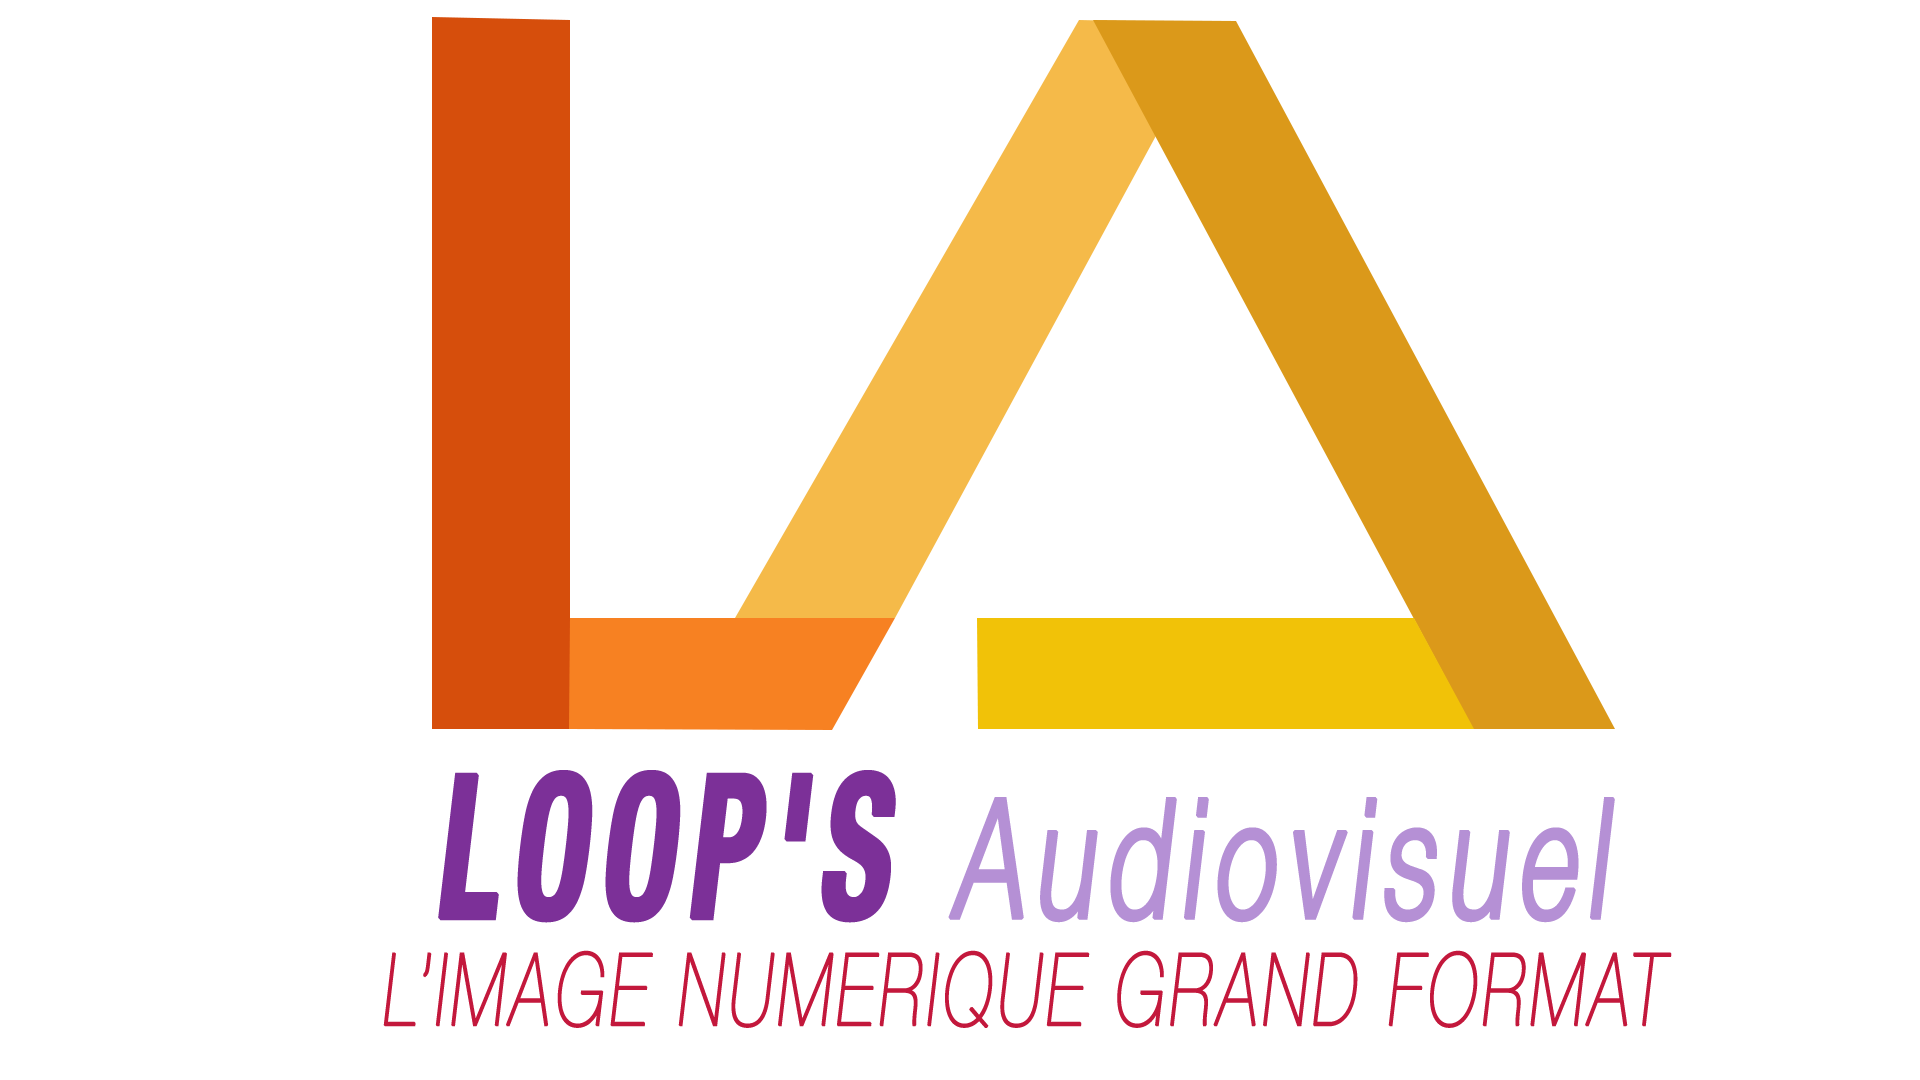 Loop's Audiovisuel